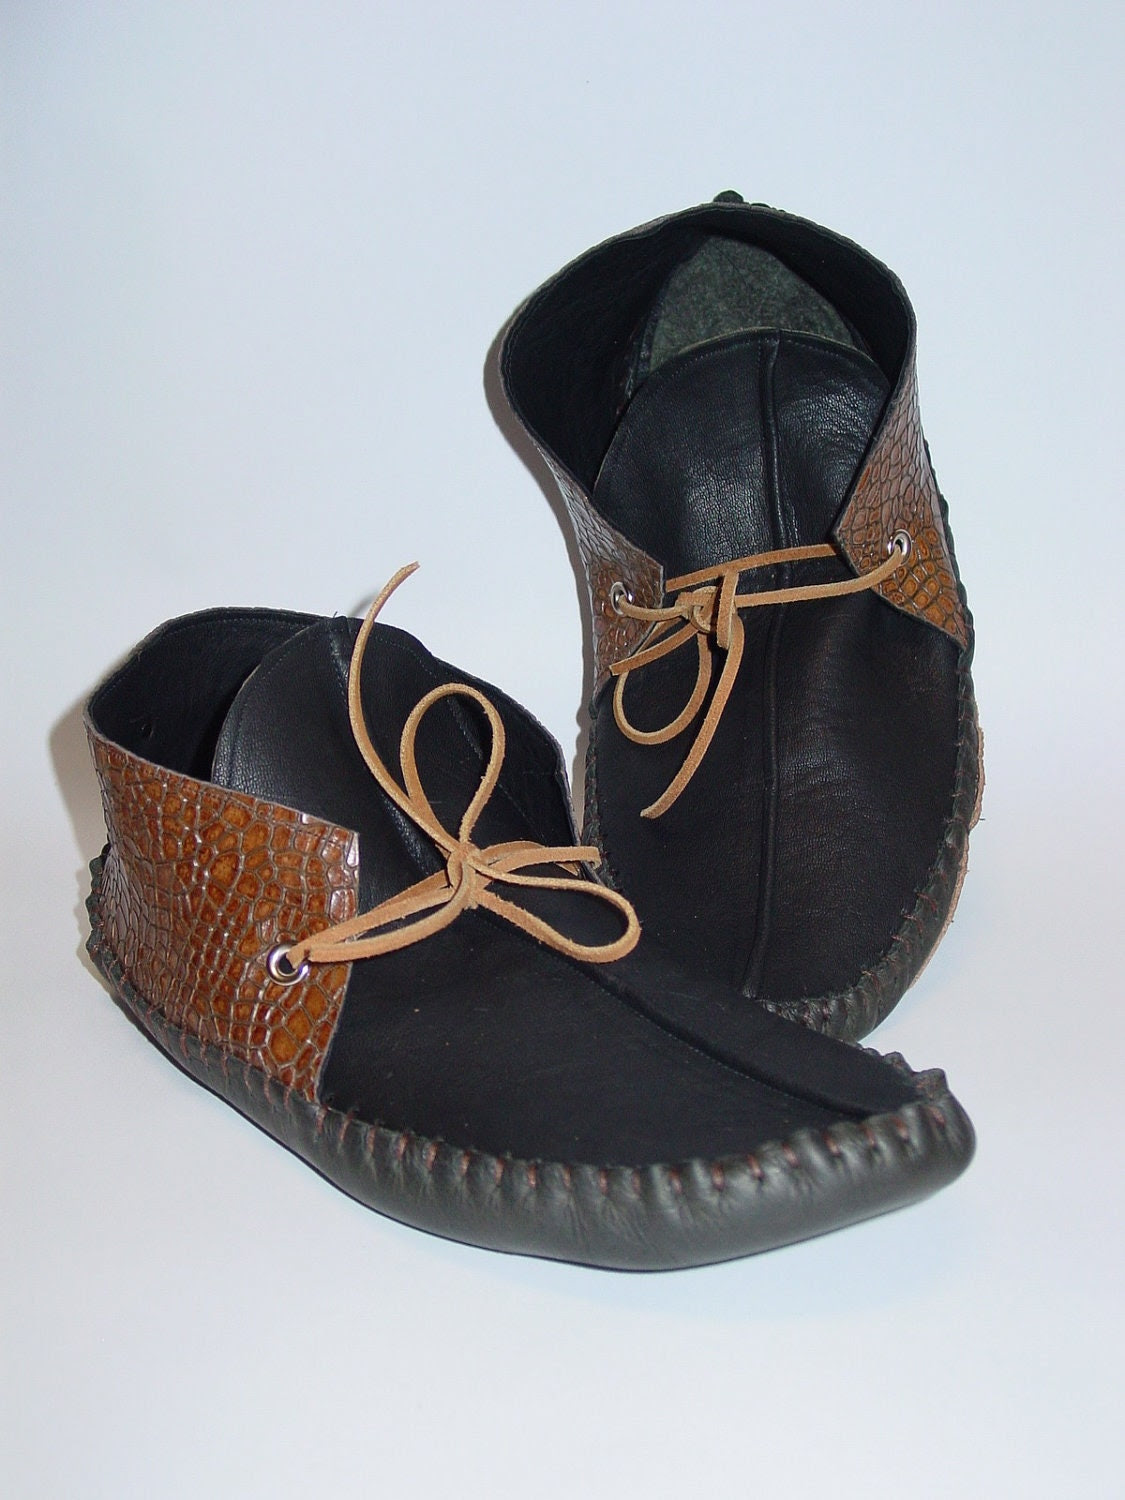 Black and Brown embossed leather moccasins for men